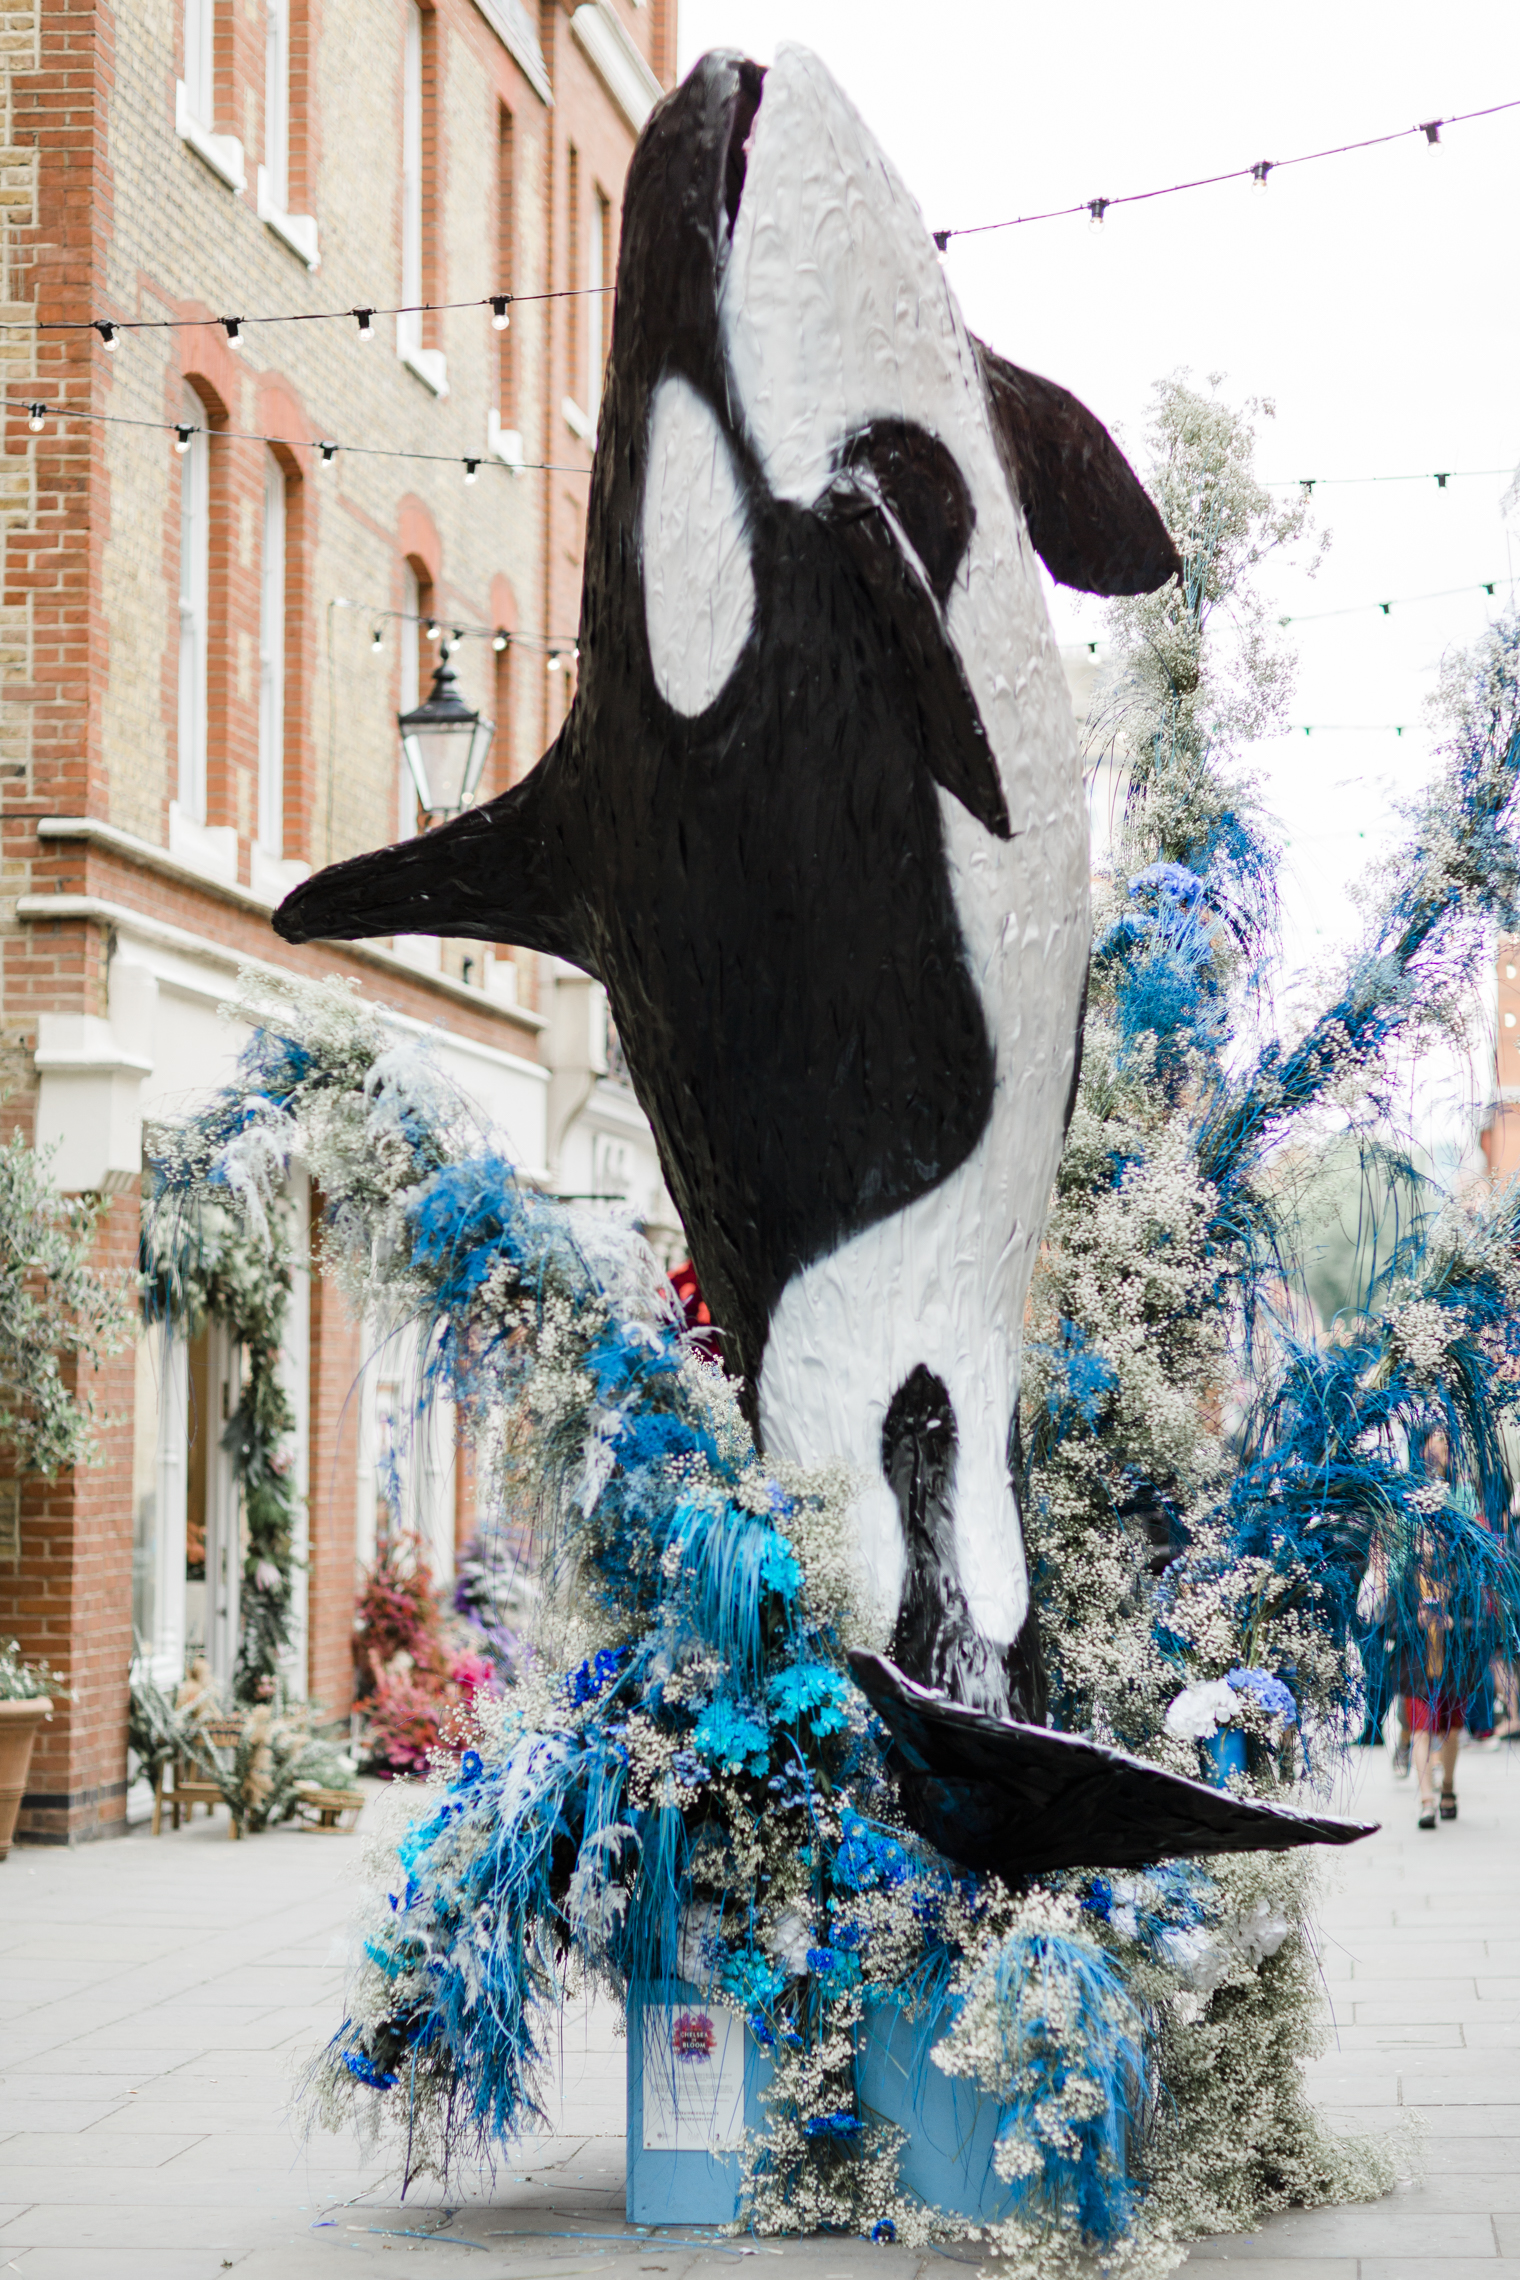 Orca Whale by All for Love London for Chelsea in Bloom 2019